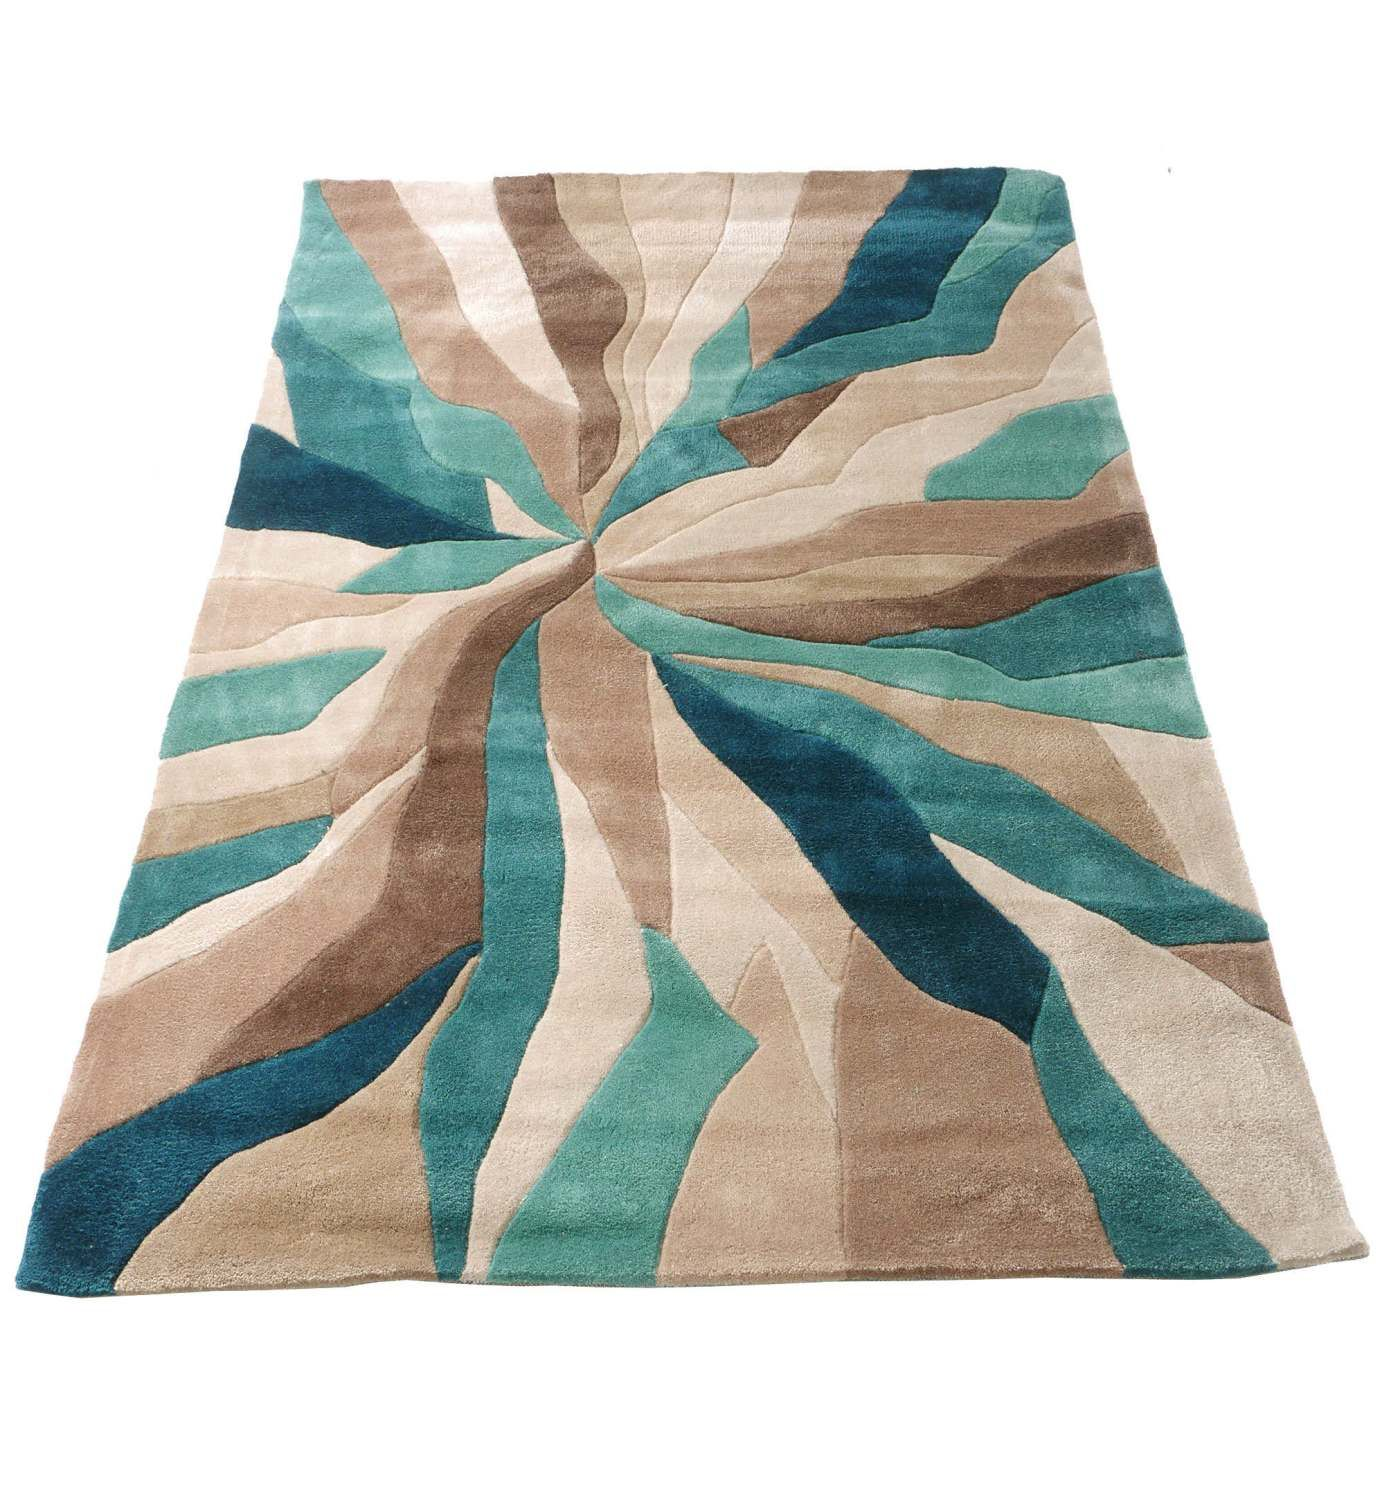 Nebula Rug In Beige, Teal Blue And Brown